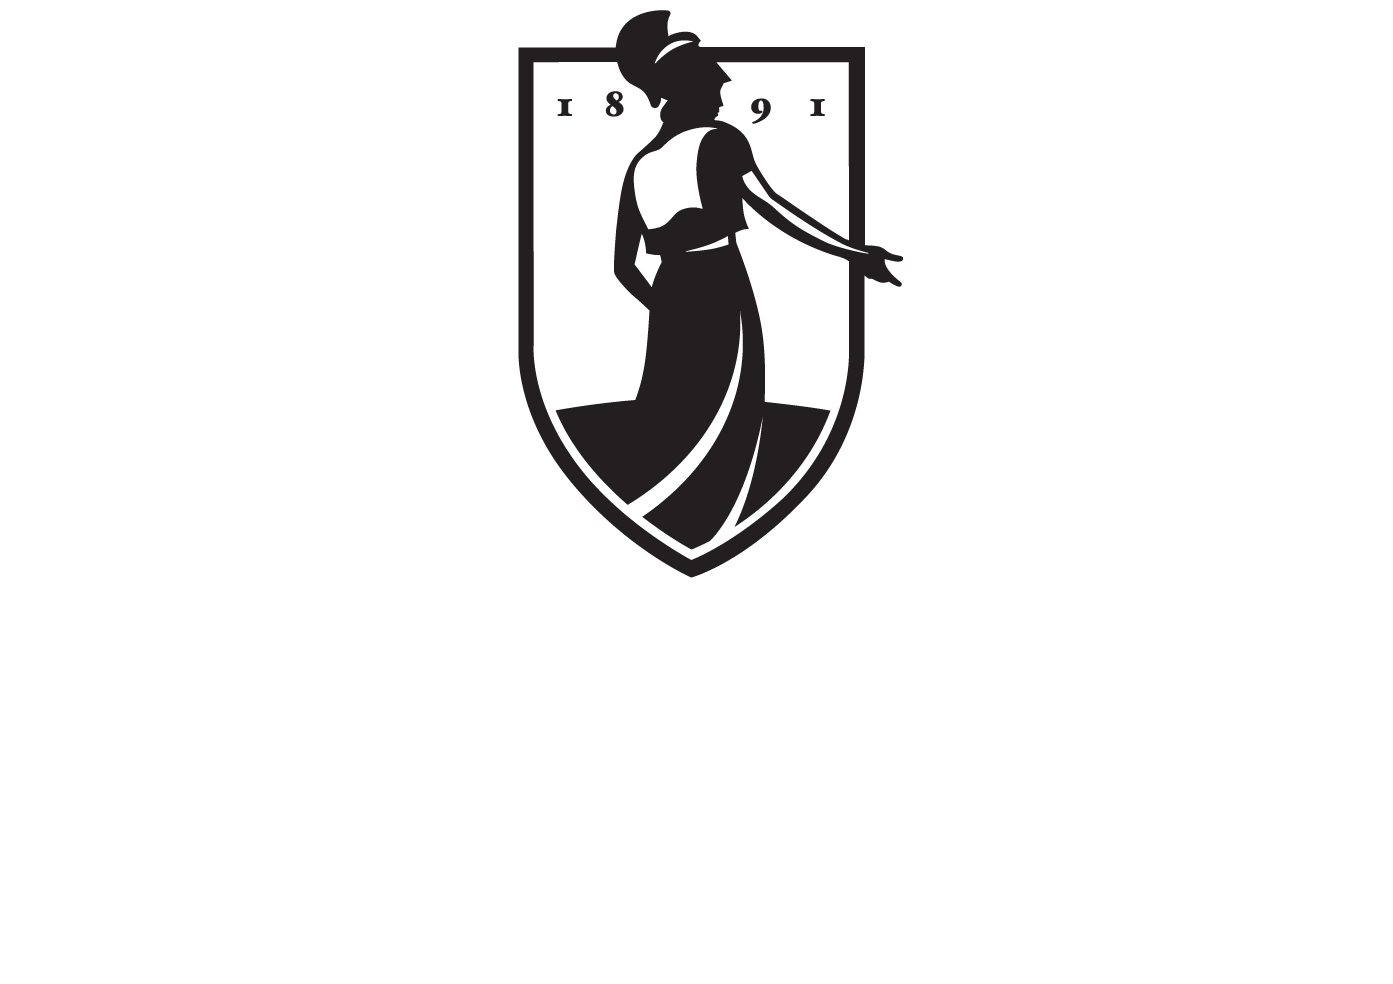 UNCG Featured in Princeton Review's 'Best Colleges'